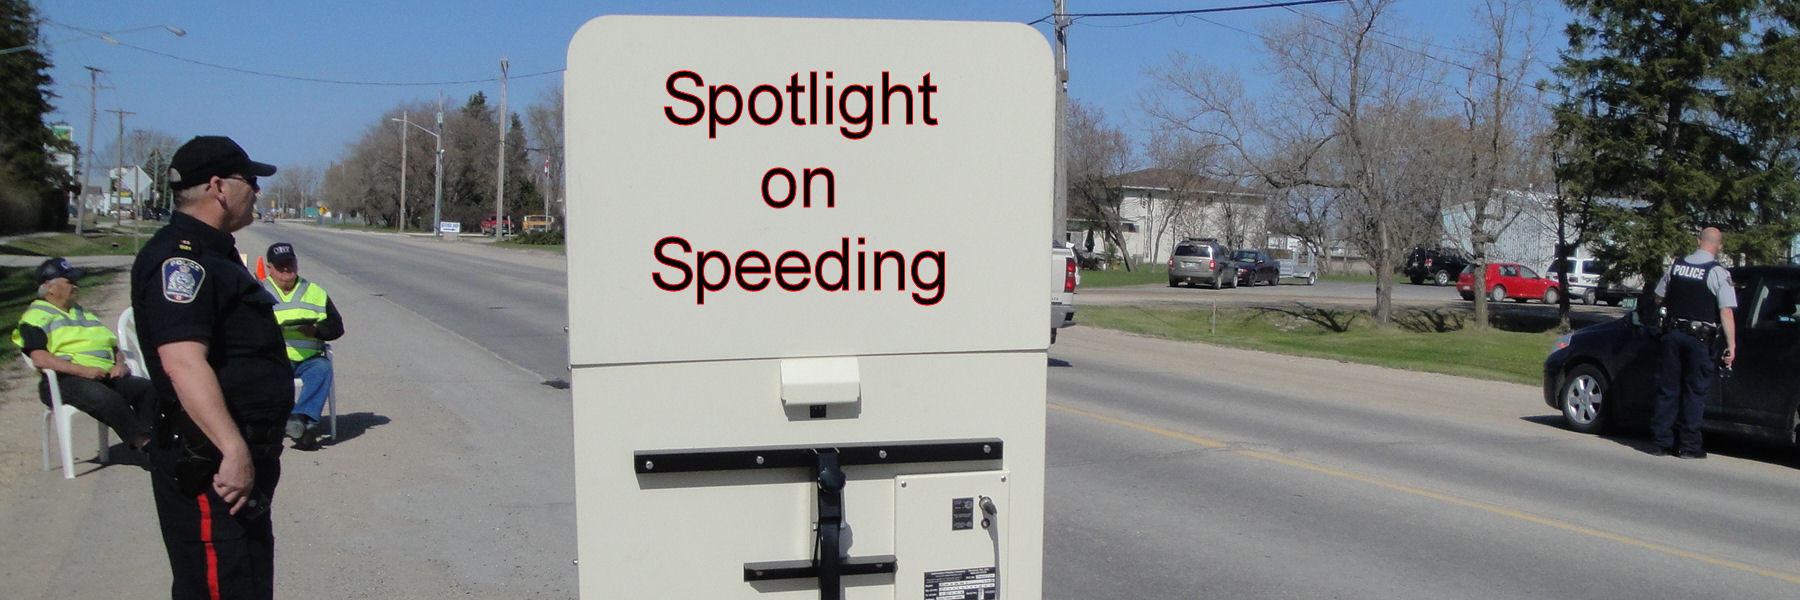 Spotlight on Speeding